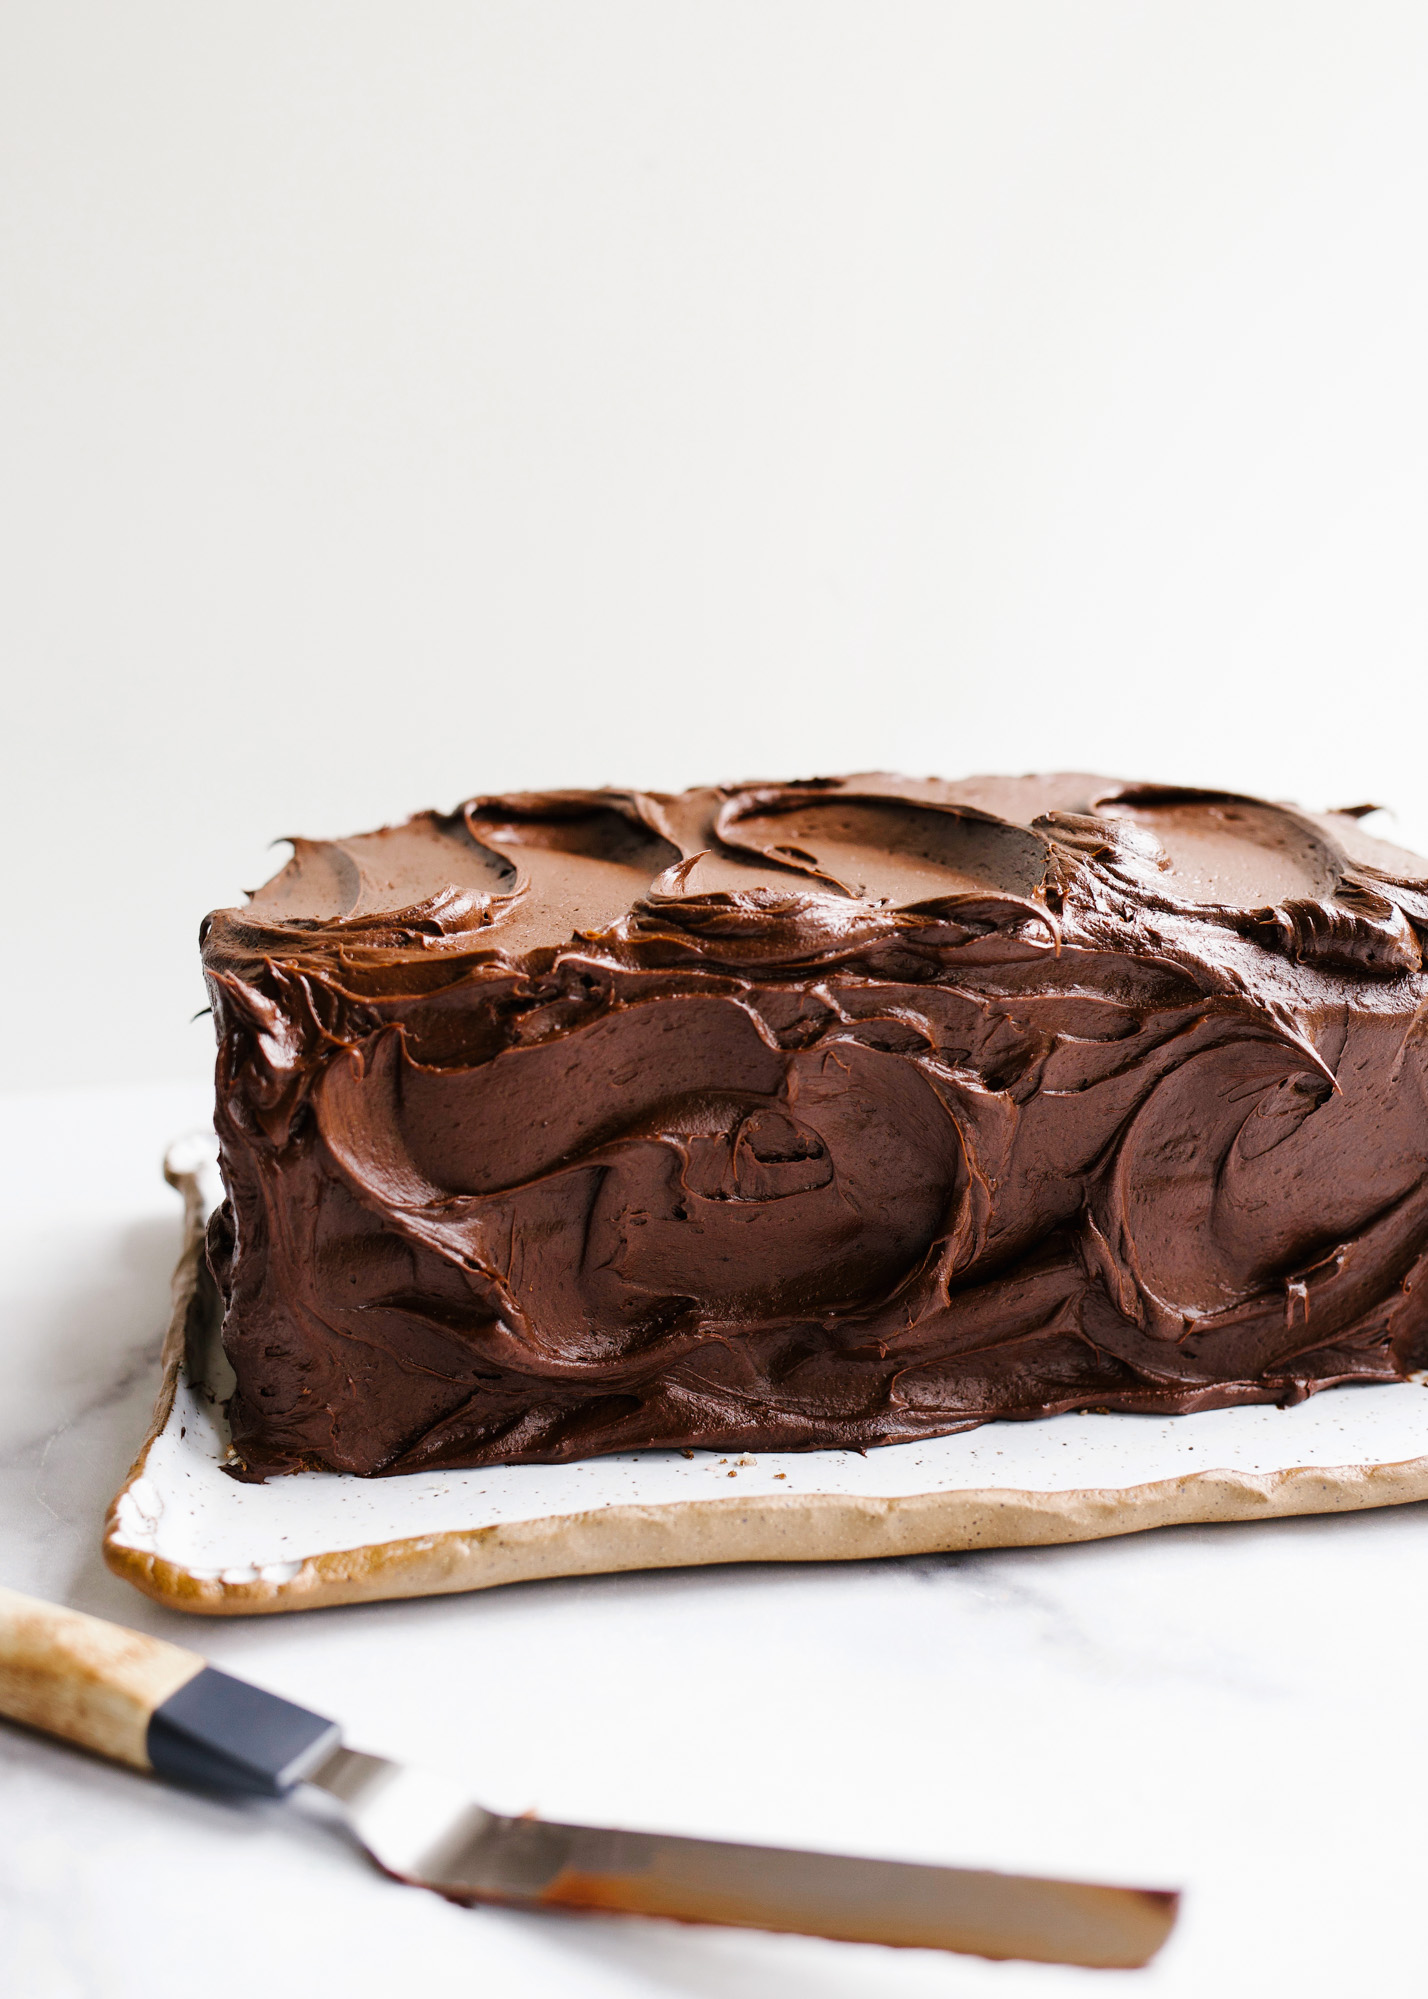 Marble Layer Cake by Wood and Spoon blog. This is a small batch mini chocolate and vanilla swirl cake with a rich fudge frosting. Perfect for smaller serving size or family size. This cake can be made as a sheet cake or a small stacked cake. Learn how to swirl cake batters and make this delicious half and half cake on thewoodandspoon.com